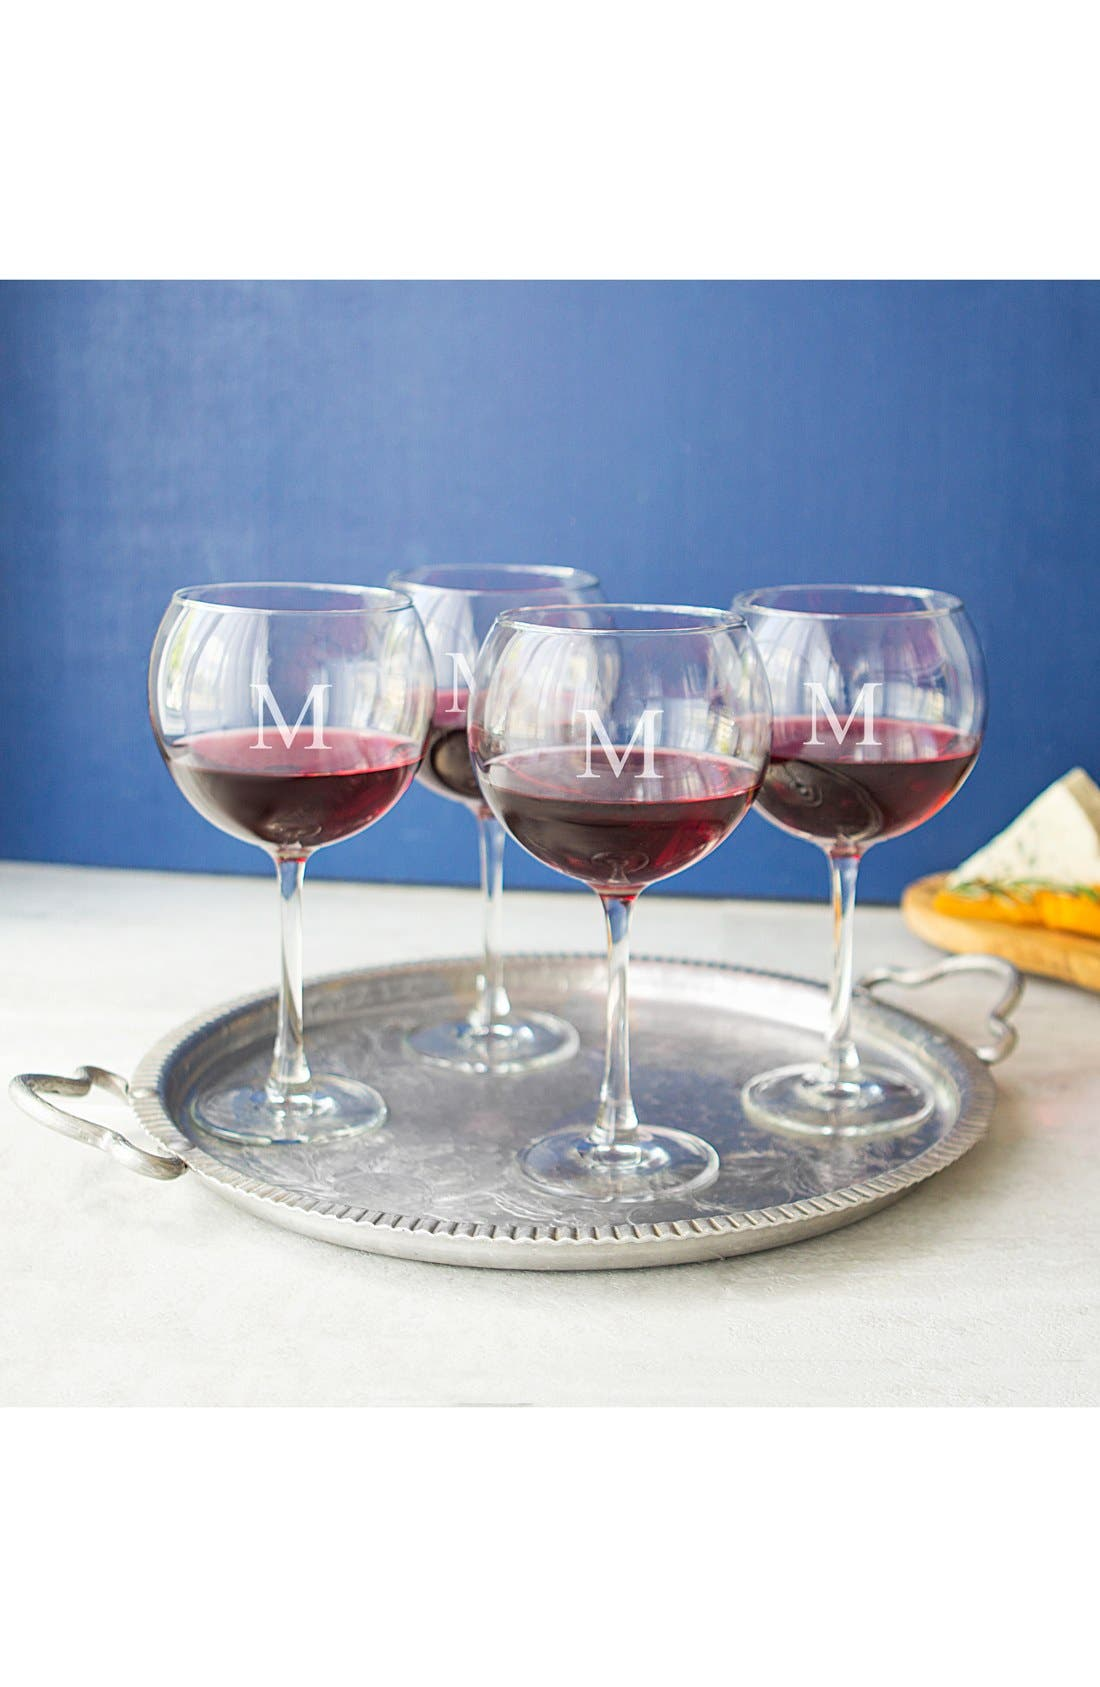 Main Image - Cathy's Concepts Set of 4 Personalized Red Wine Glasses